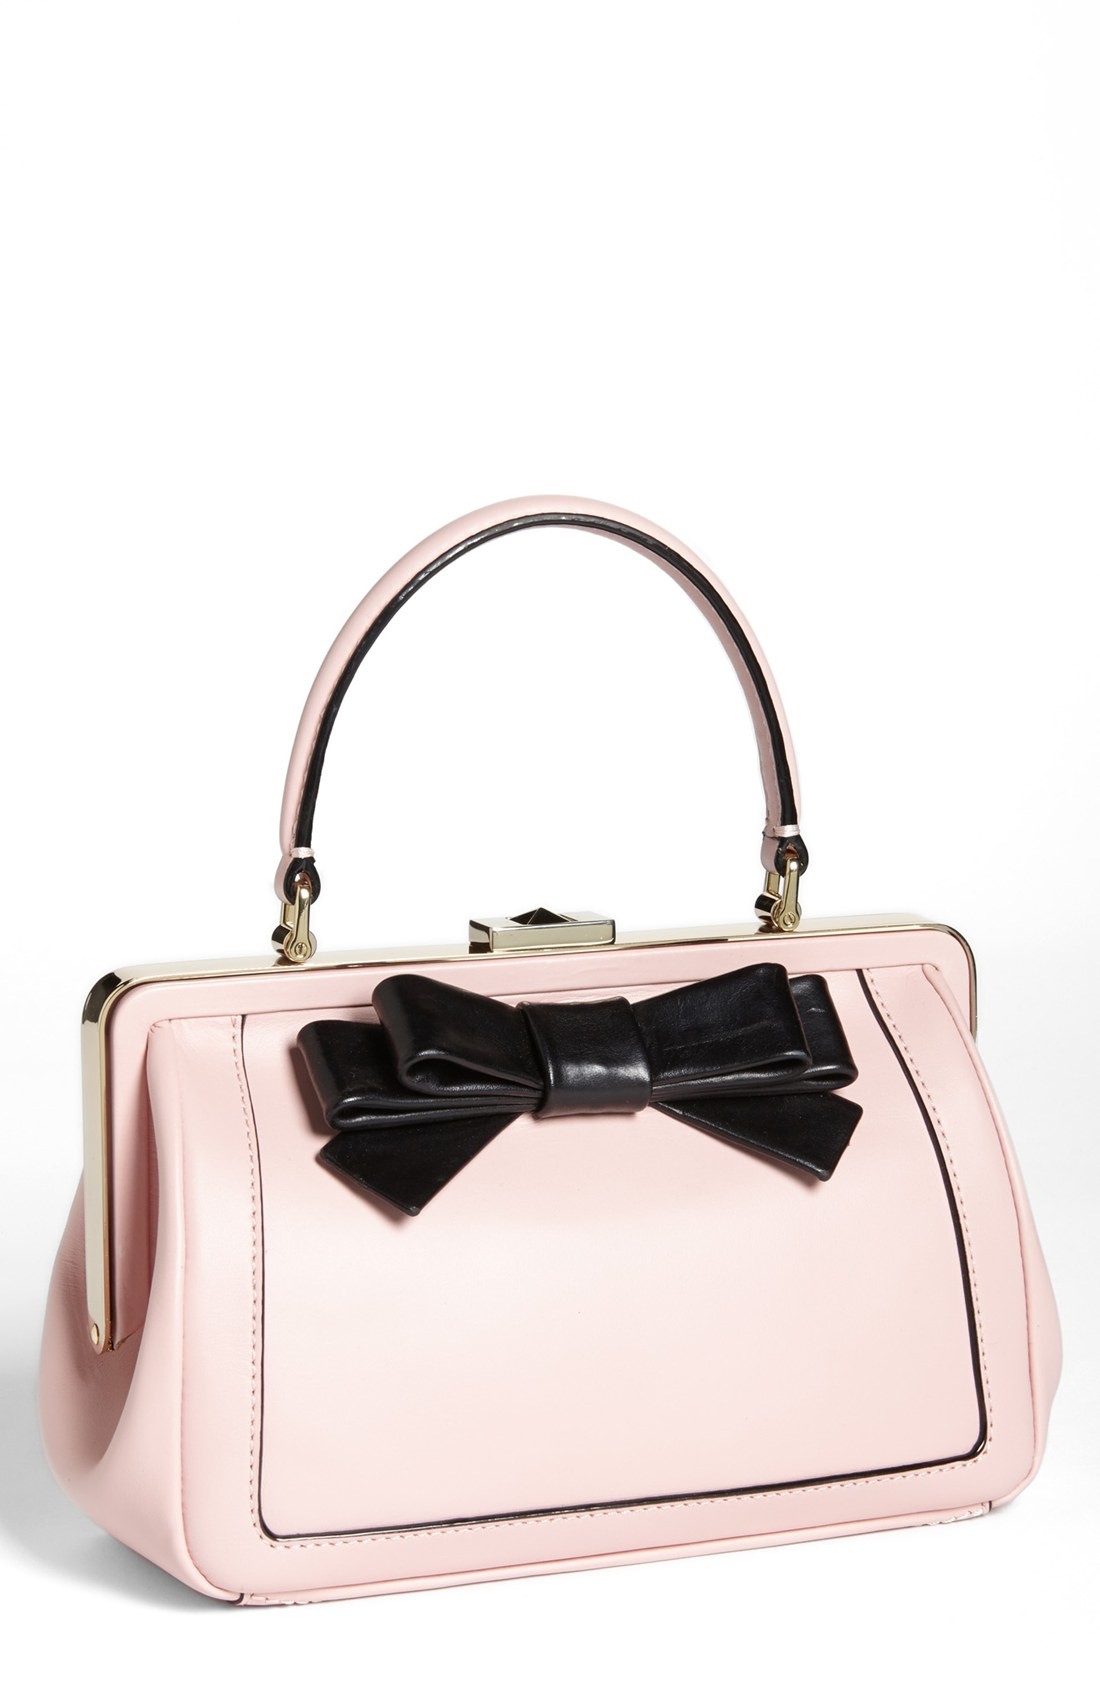 Kate Spade Cricket Street Small Emilia Satchel in Pink ...